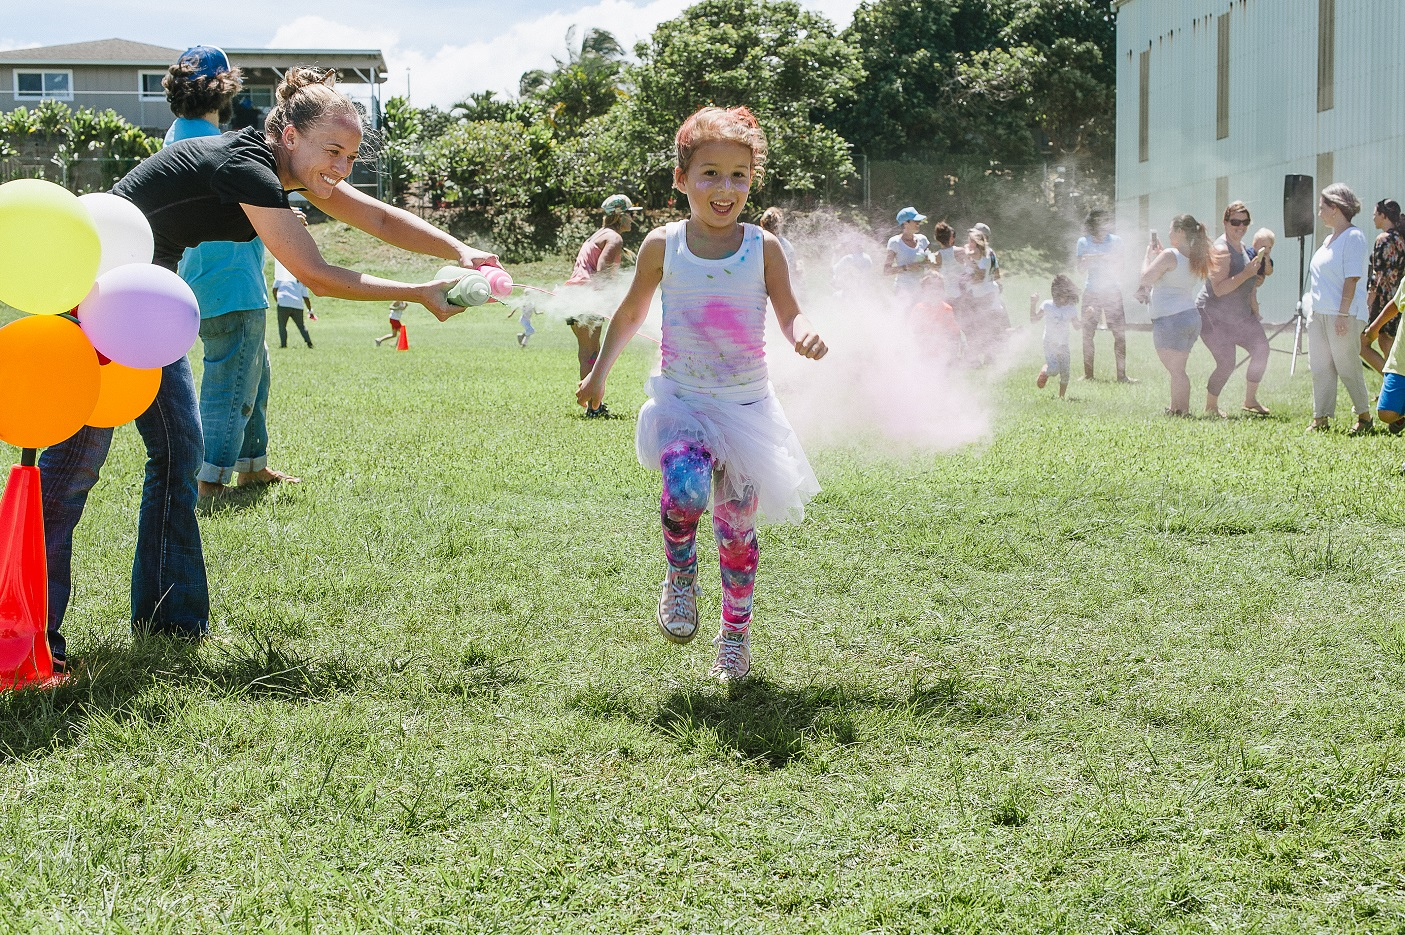 Haʻikū Elementary School on Maui, a two-time winner that received $2,500 for its participation in the Fall 2015 and Spring 2016 challenges, used its funds to hold a community Wellness Day with a color run, dancing, yoga, smoothie making and more.